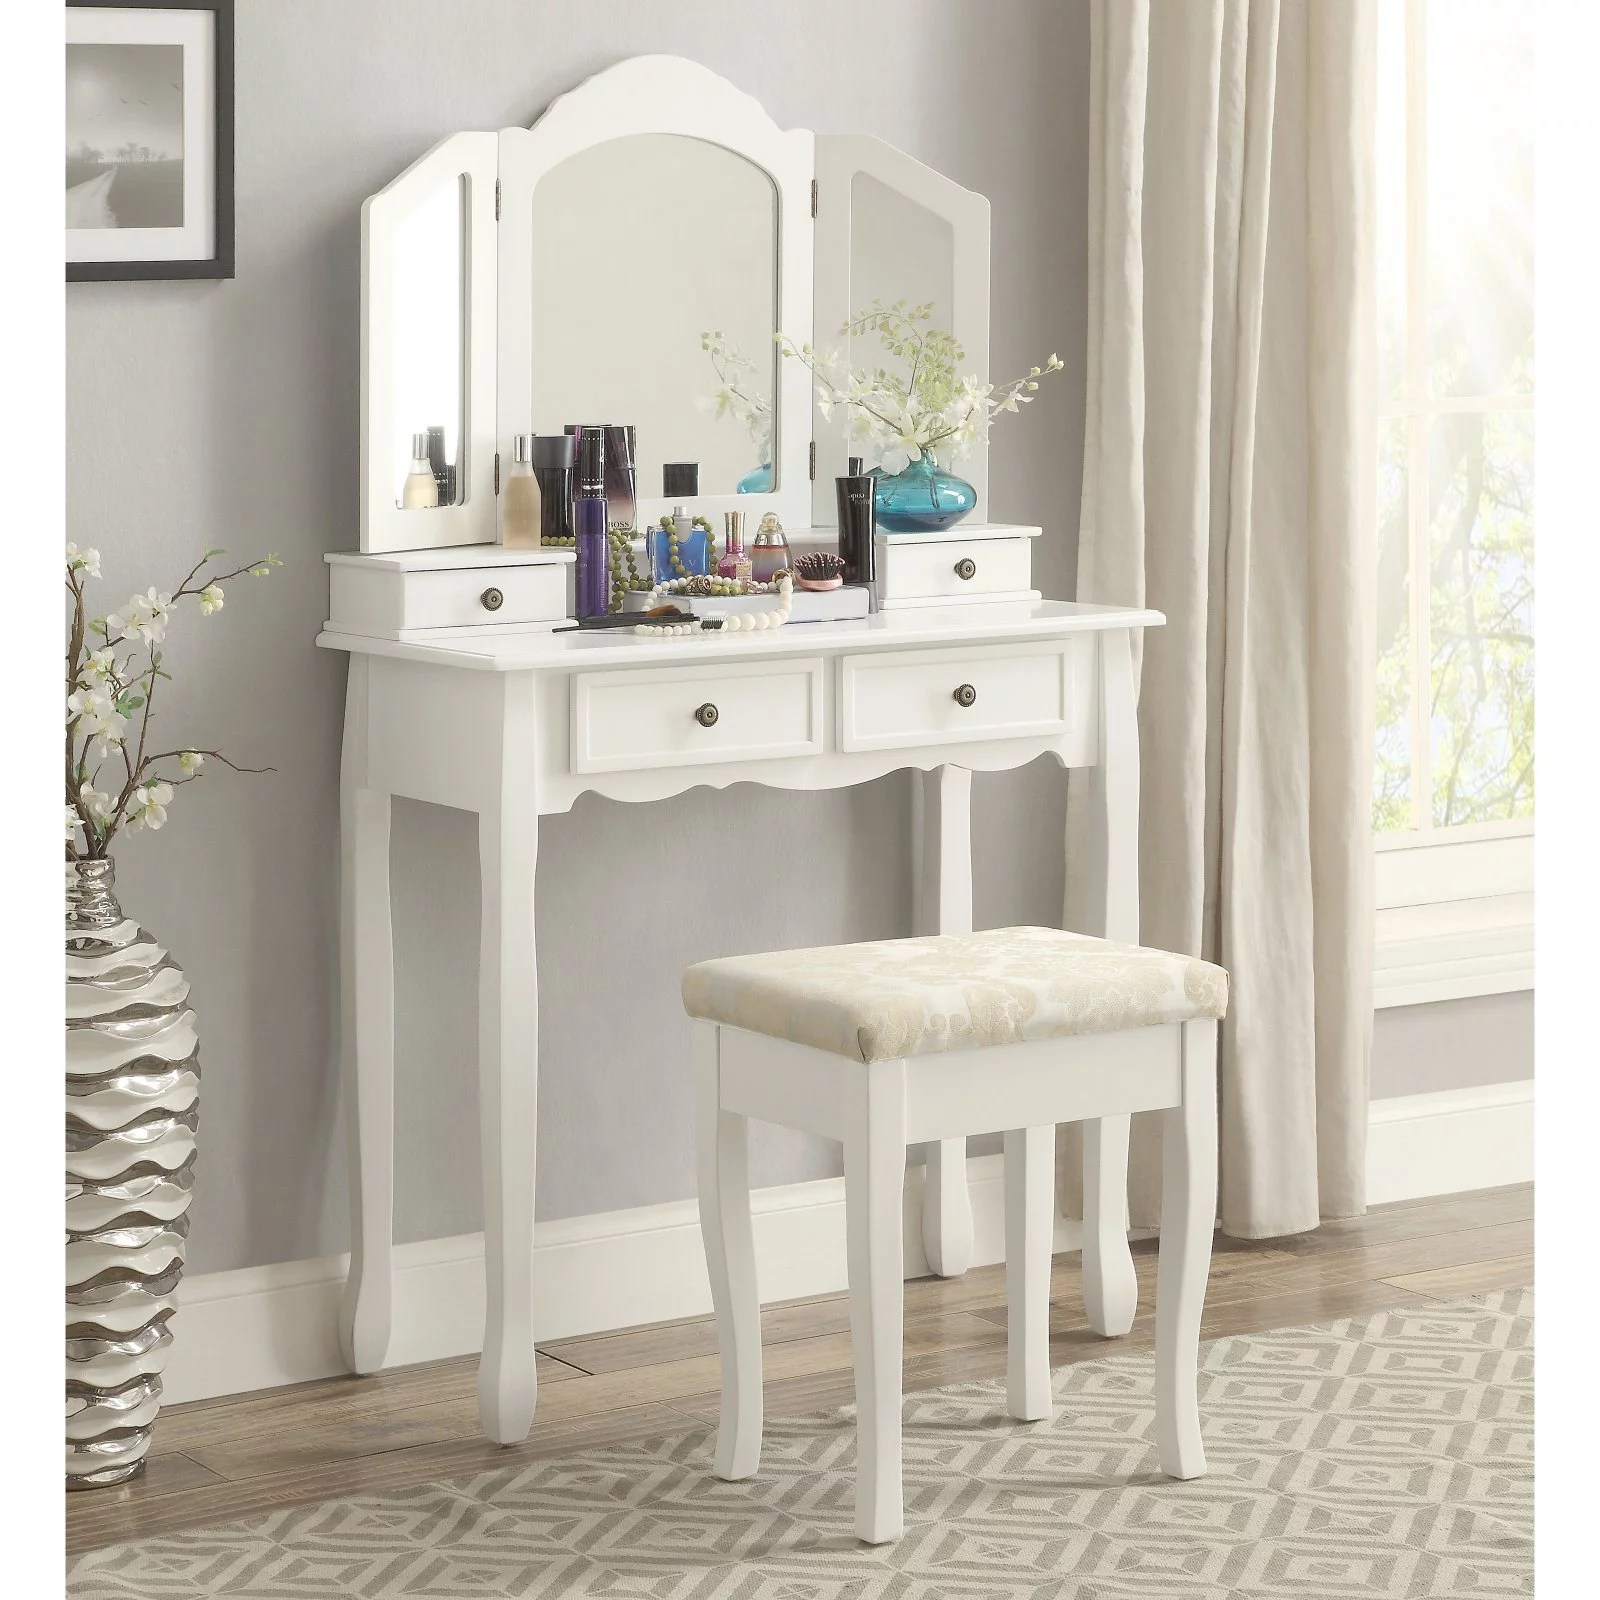 Wooden Make Up Table Roundhill Furniture Sanlo White Wooden Vanity Make Up Table And Stool Set